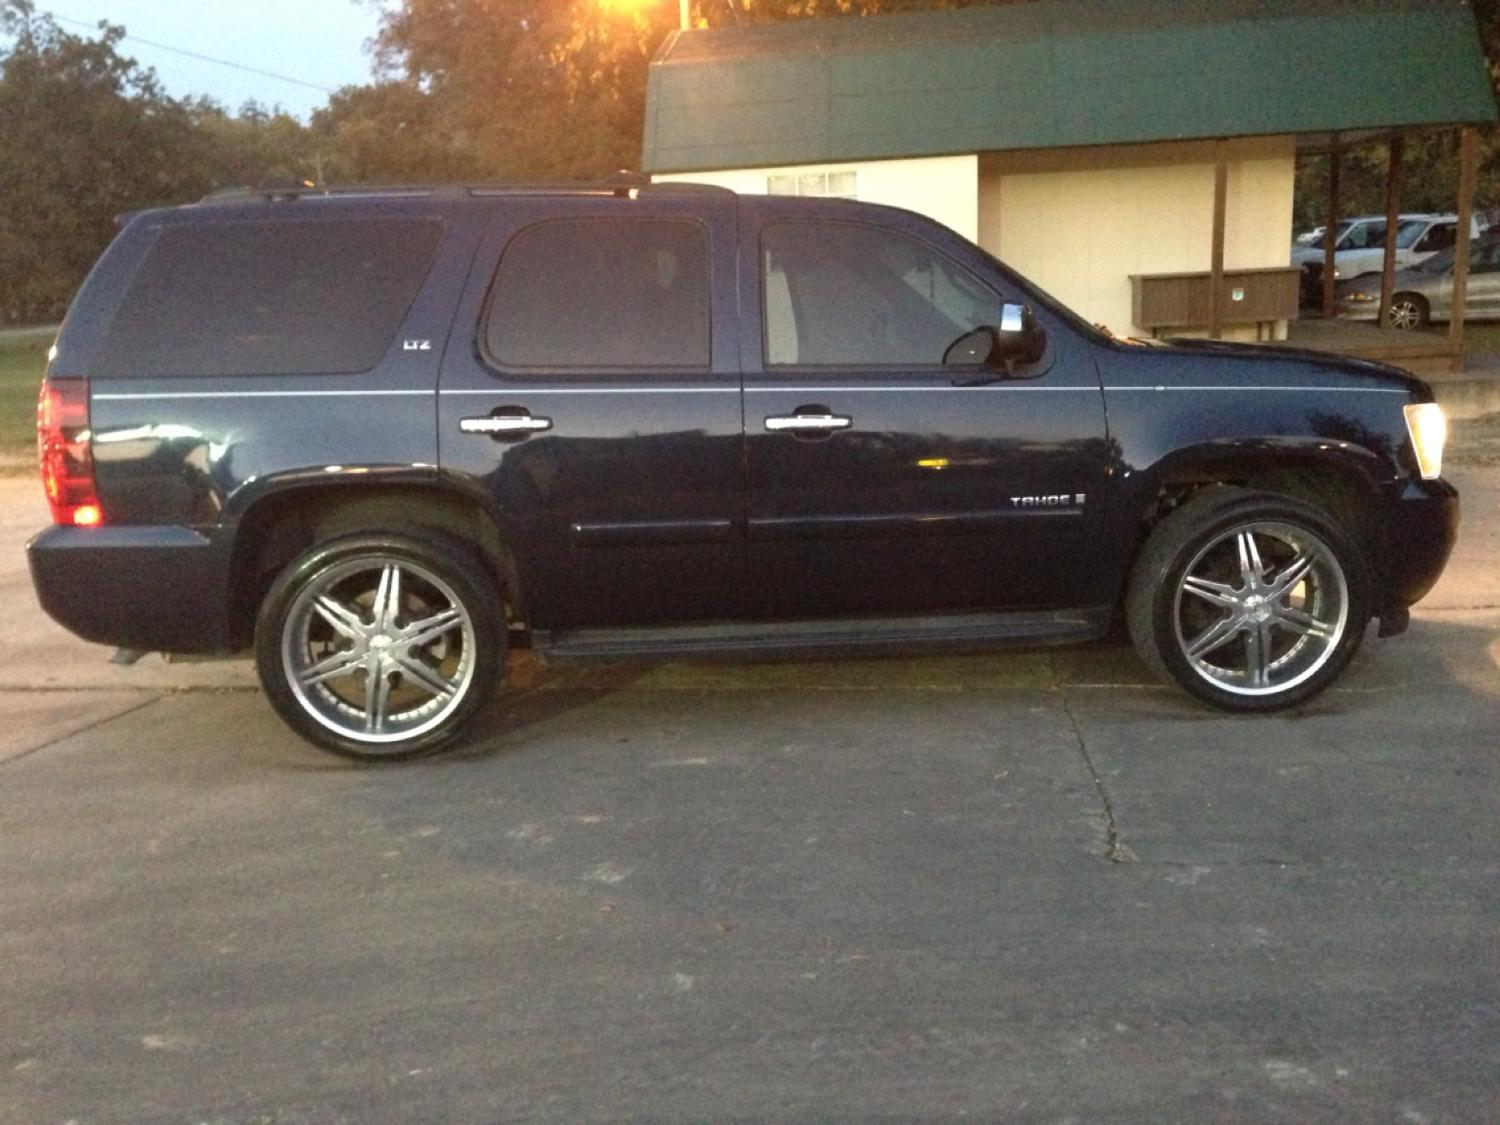 08 Tahoe Ltz Flex Fuel 3rd Row Fully Loaded Custom Rims And Bowties 102k Miles Asking 19 000 For In Durant Oklahoma 2019